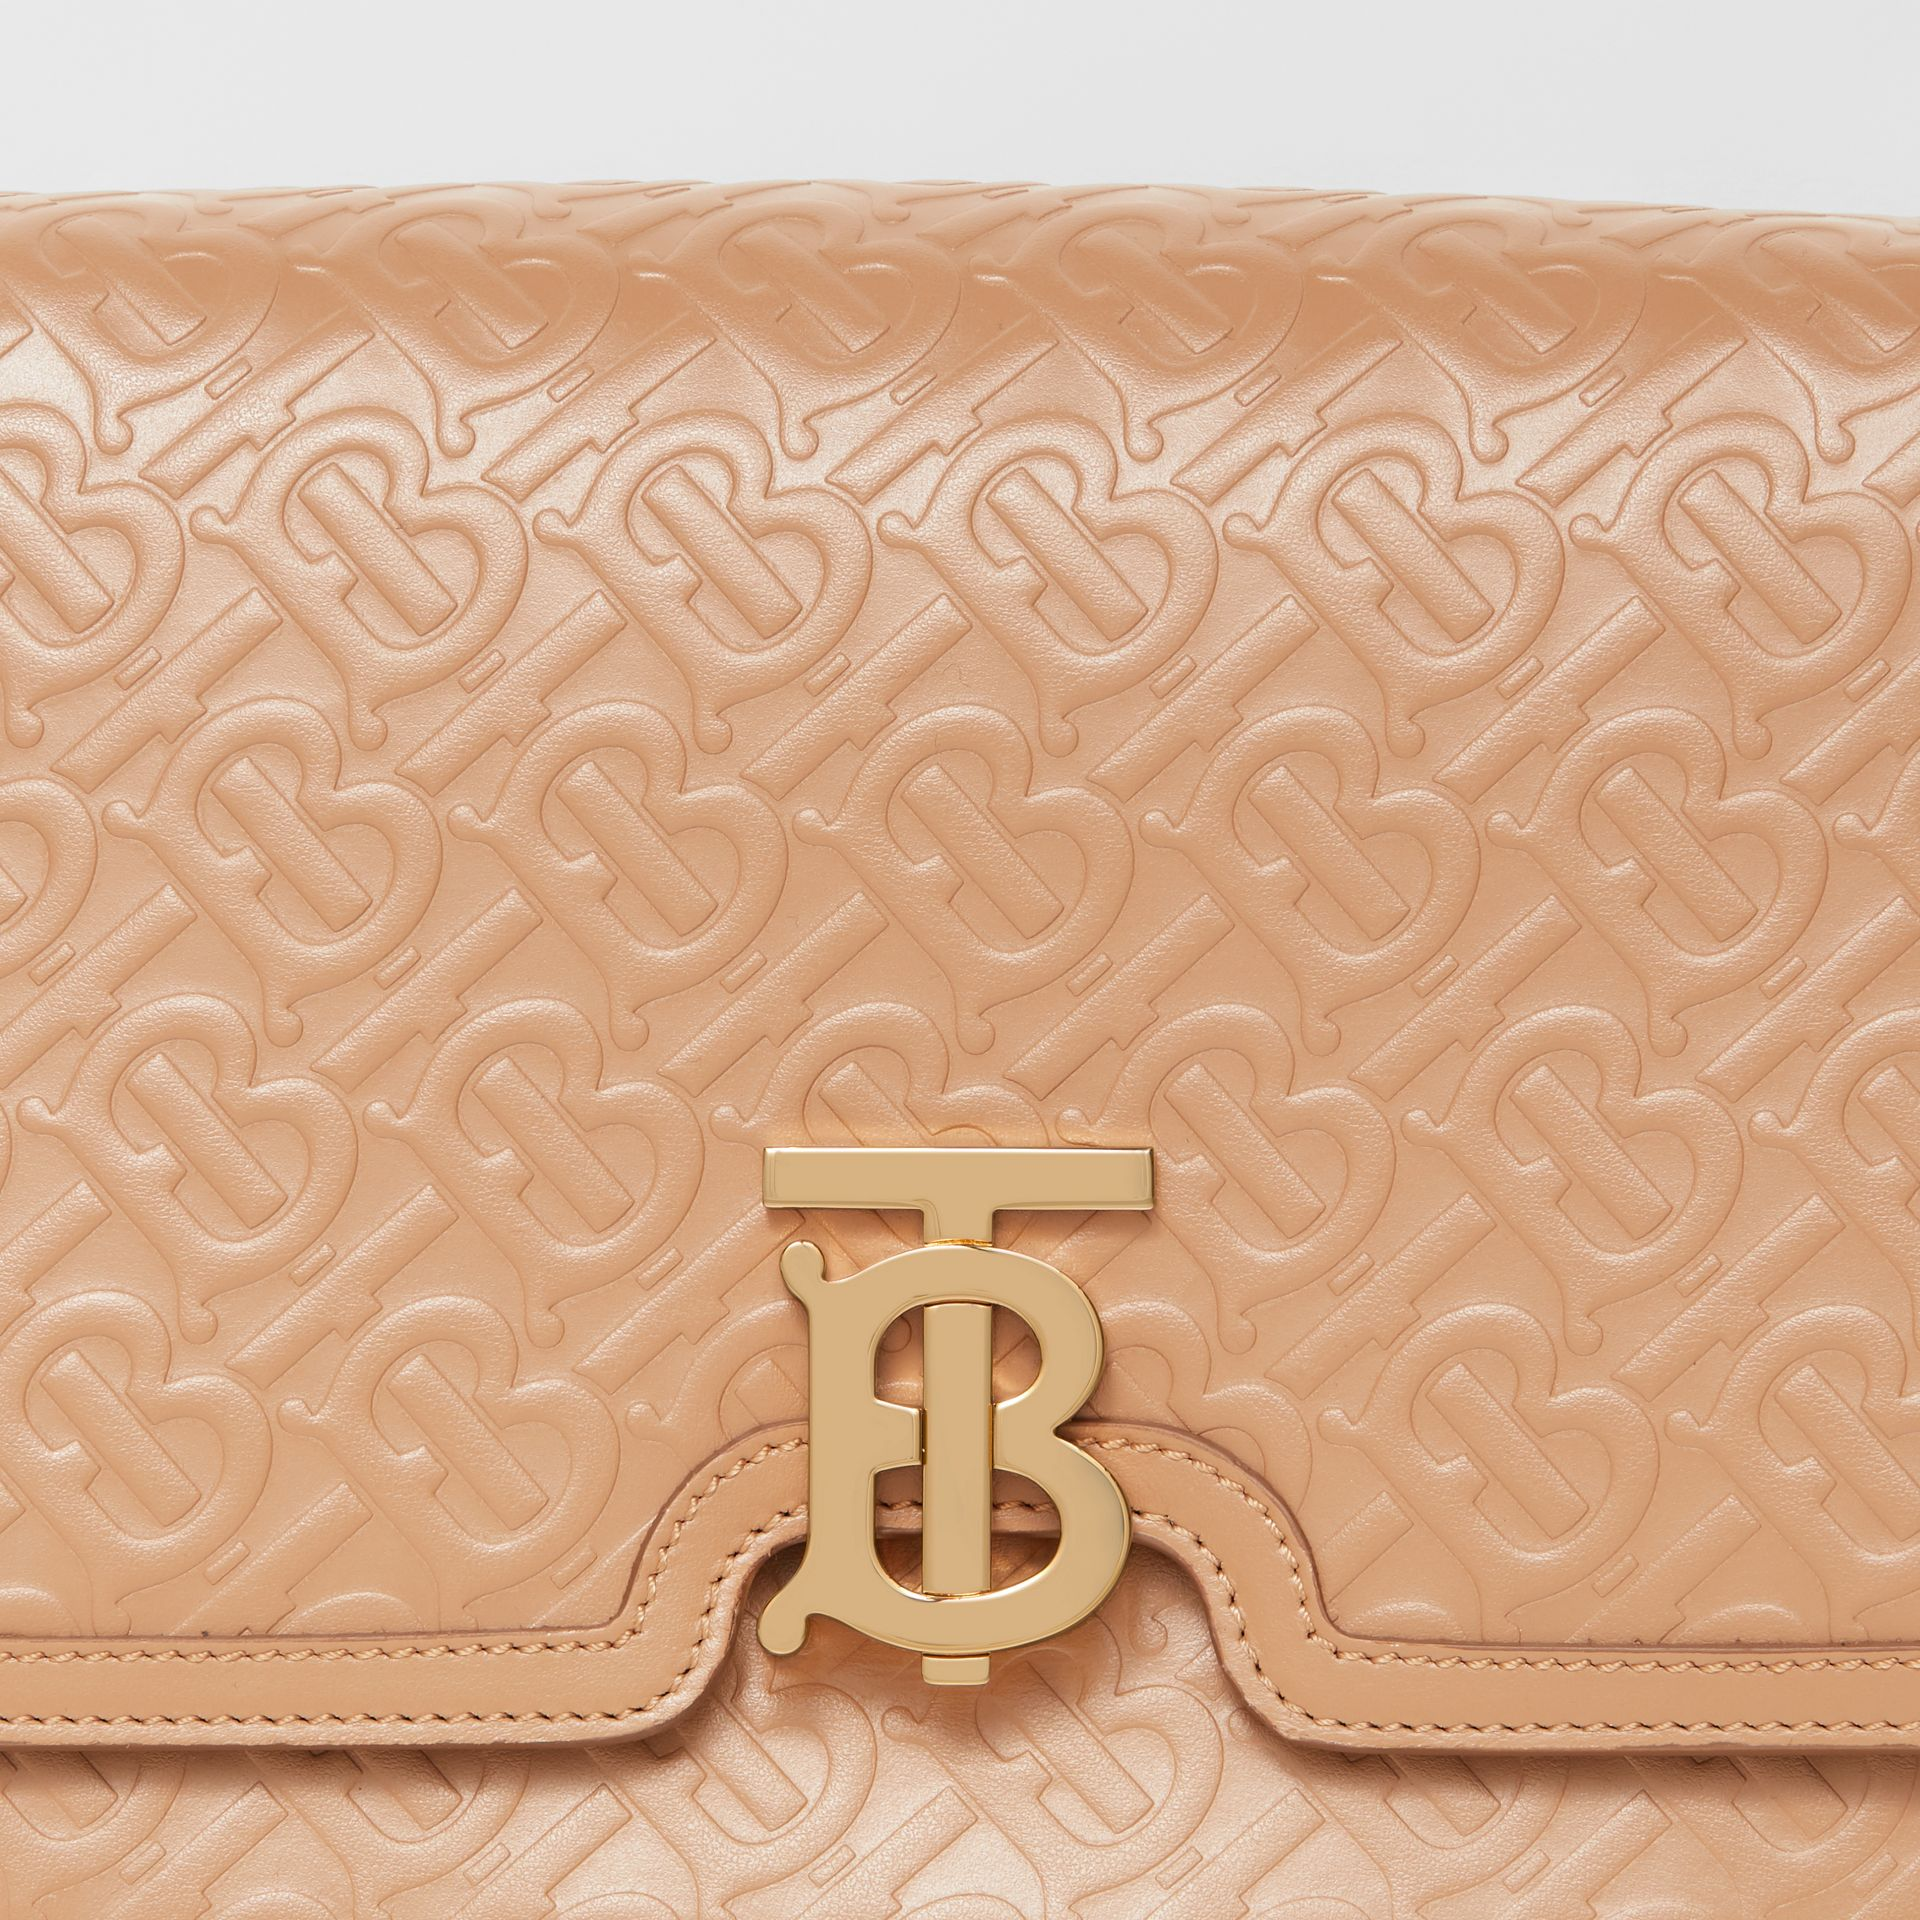 Medium Monogram Leather TB Bag in Light Camel - Women | Burberry - gallery image 1